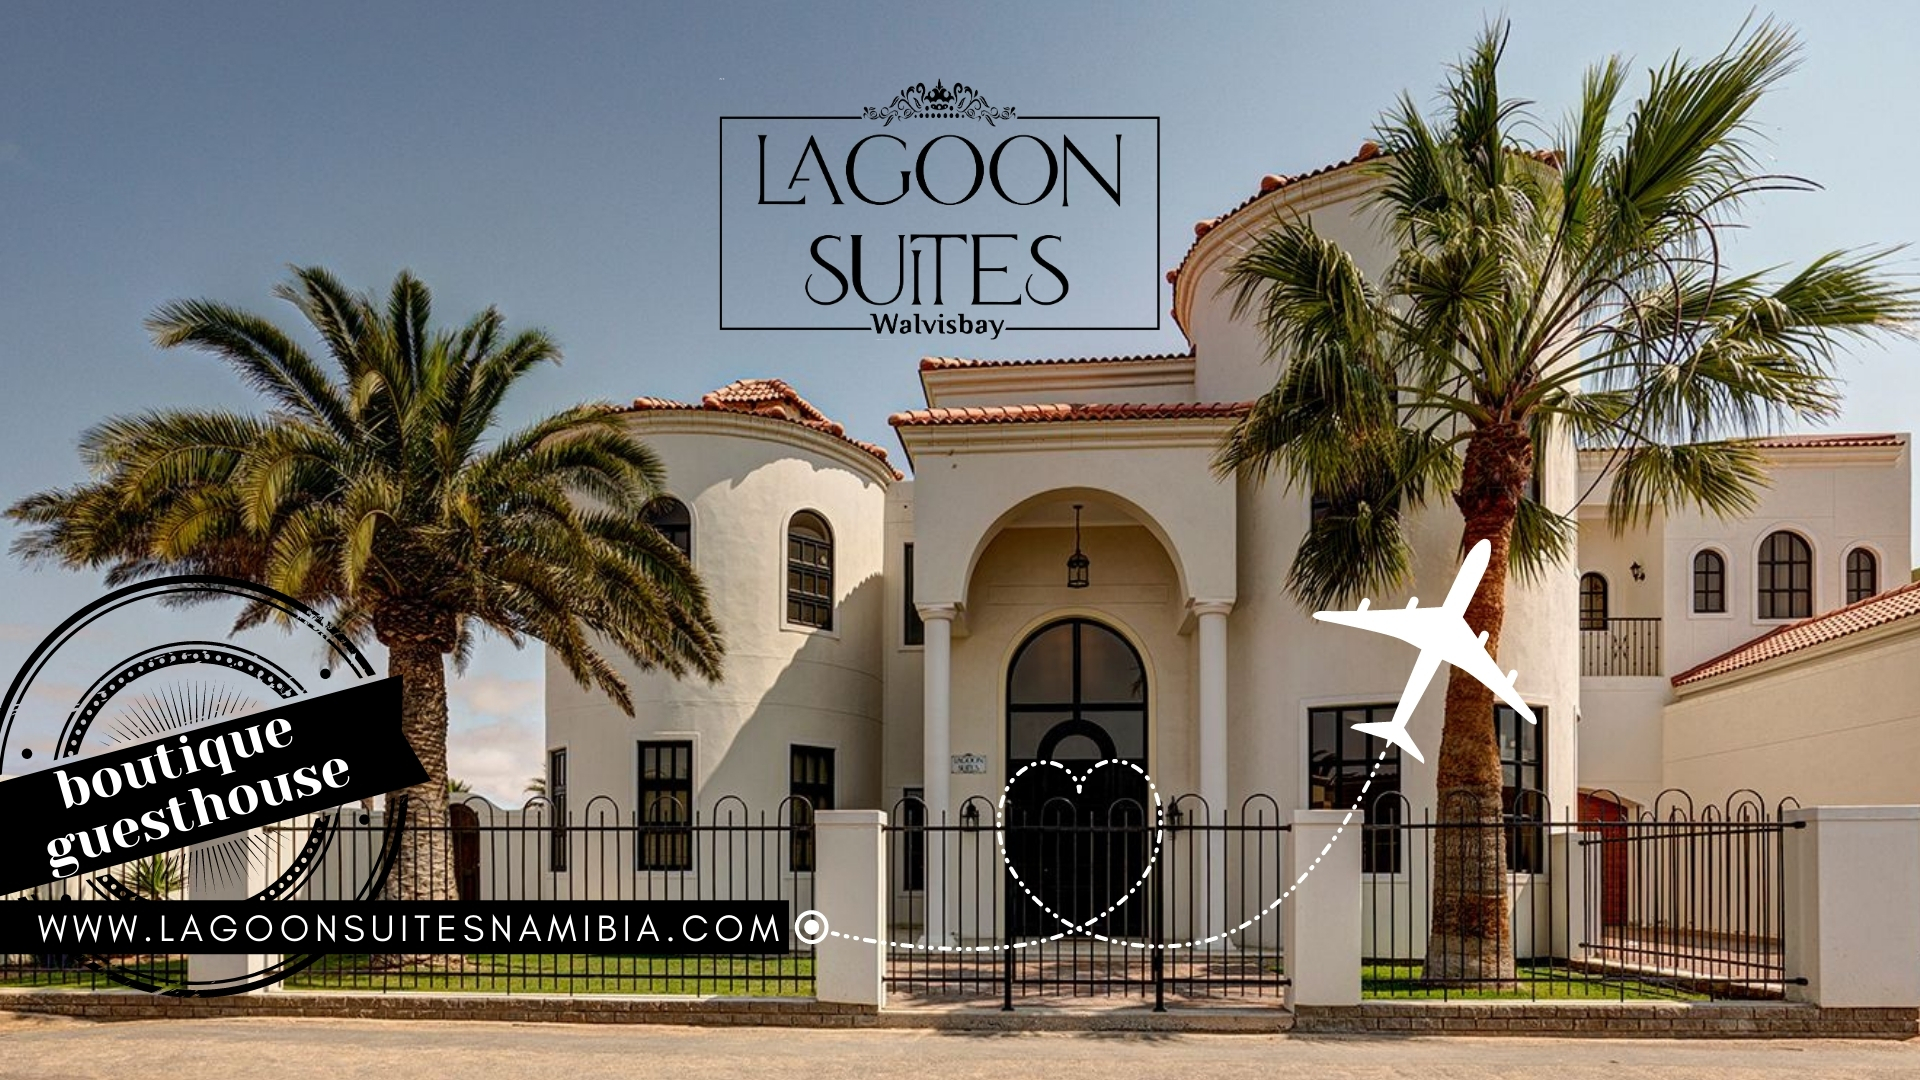 Lagoon Suites Walvis Bay | Overnight Accommodation In Walvis Bay Namibia | Destination Namibia